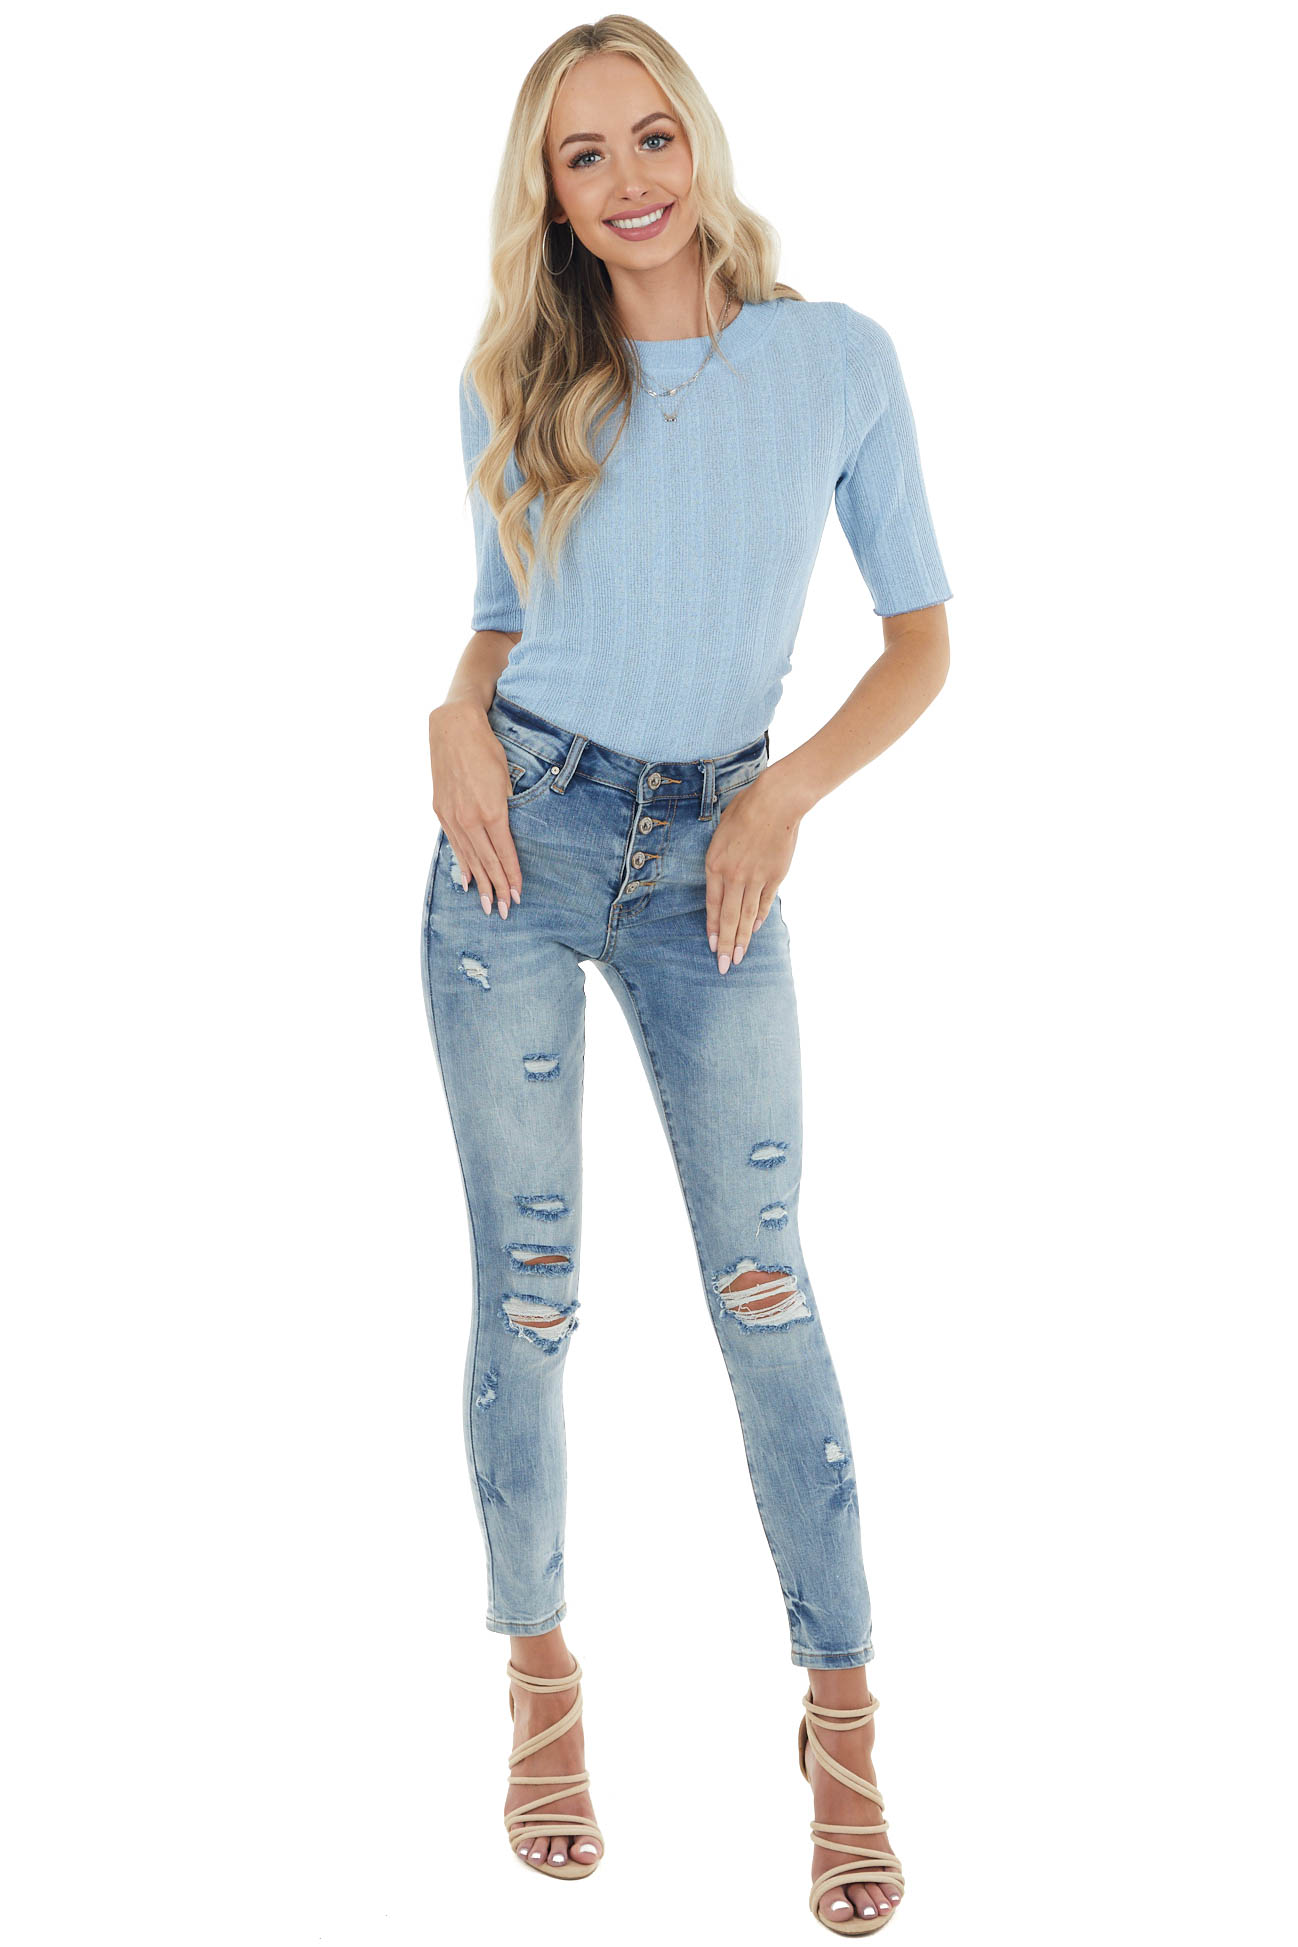 Powder Blue Half Sleeve Ribbed Knit Top with Side Ruching